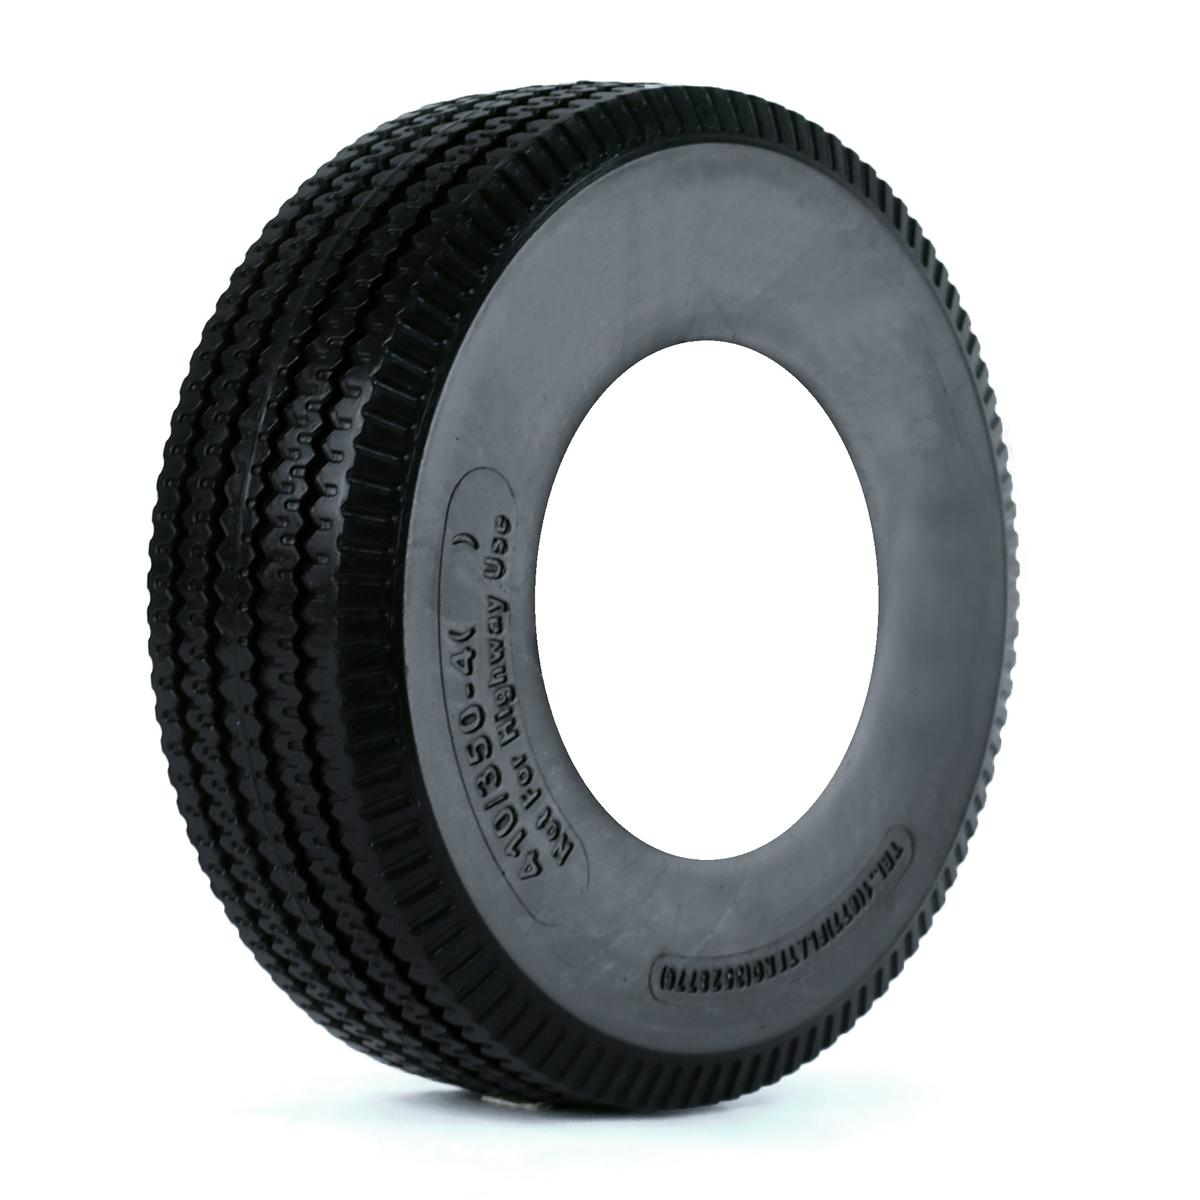 Kenda Flat Free Smooth Crosshatch Tire Only 11-6.00-6 Yard - Lawn Tire